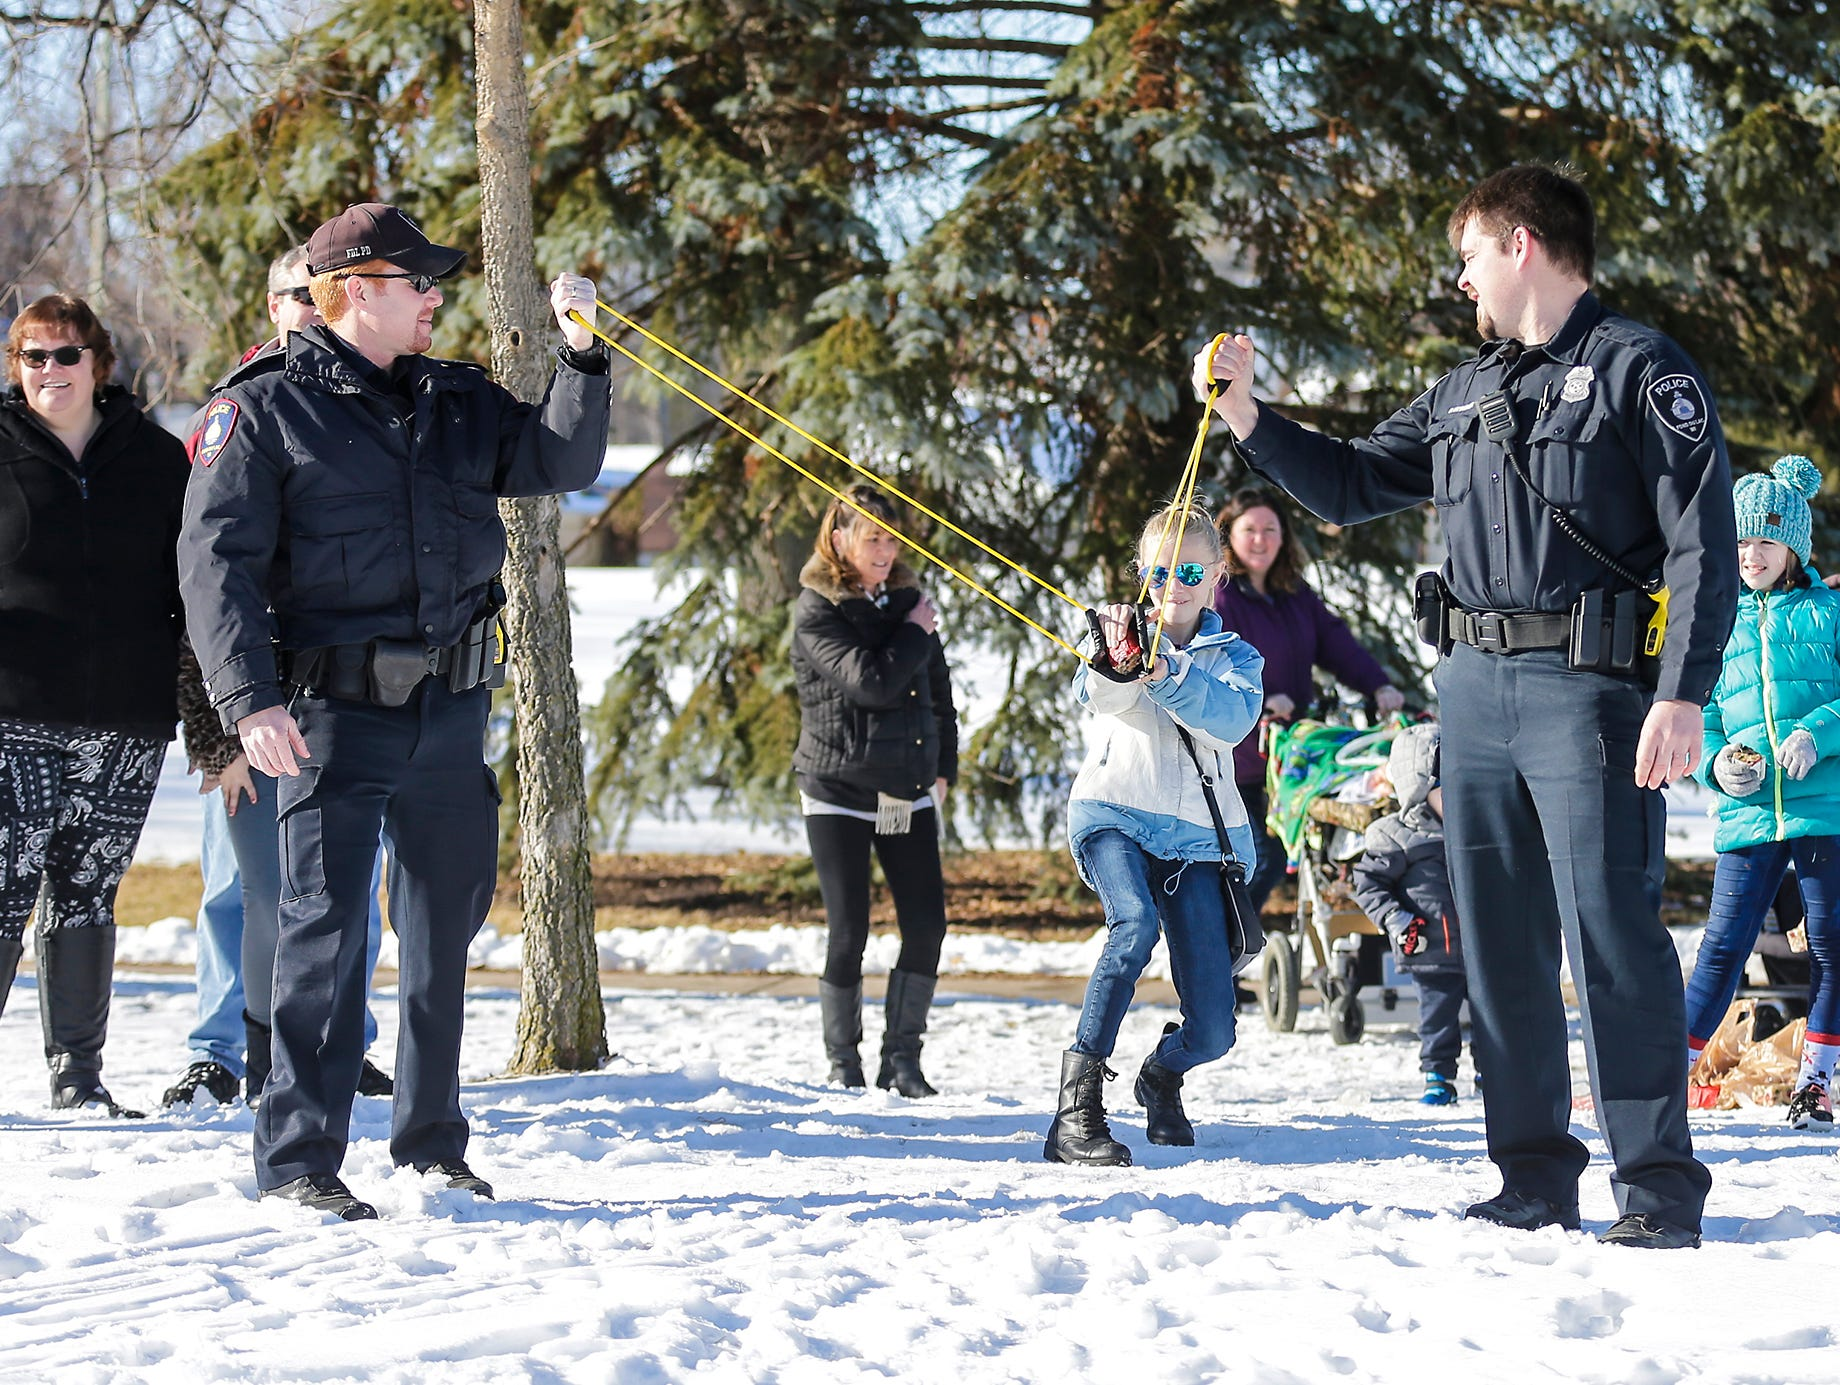 Fond du Lac Police officers Shawn Provot and Matt Chevremont hold a sling shot as Madi Bush winds up to launch a fruit cake at Winterfest Saturday, January 5, 2019 at Hamilton park in Fond du Lac, Wisconsin. Doug Raflik/USA TODAY NETWORK-Wisconsin